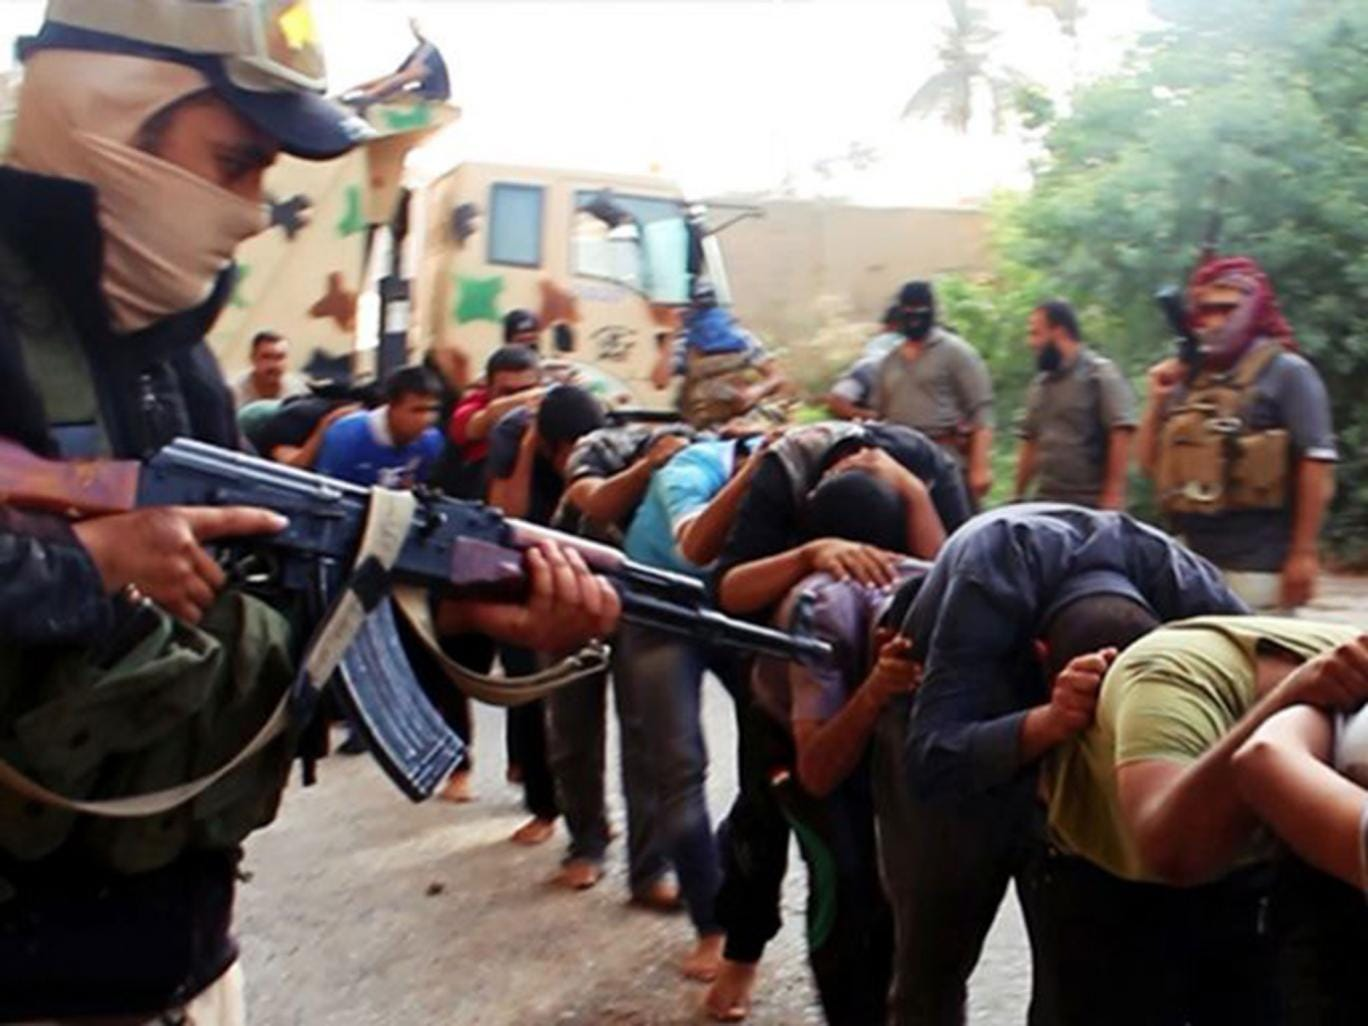 An image posted on a militant website appears to show Isis fighters leading away captured Iraqi soldiers for execution in Tikrit